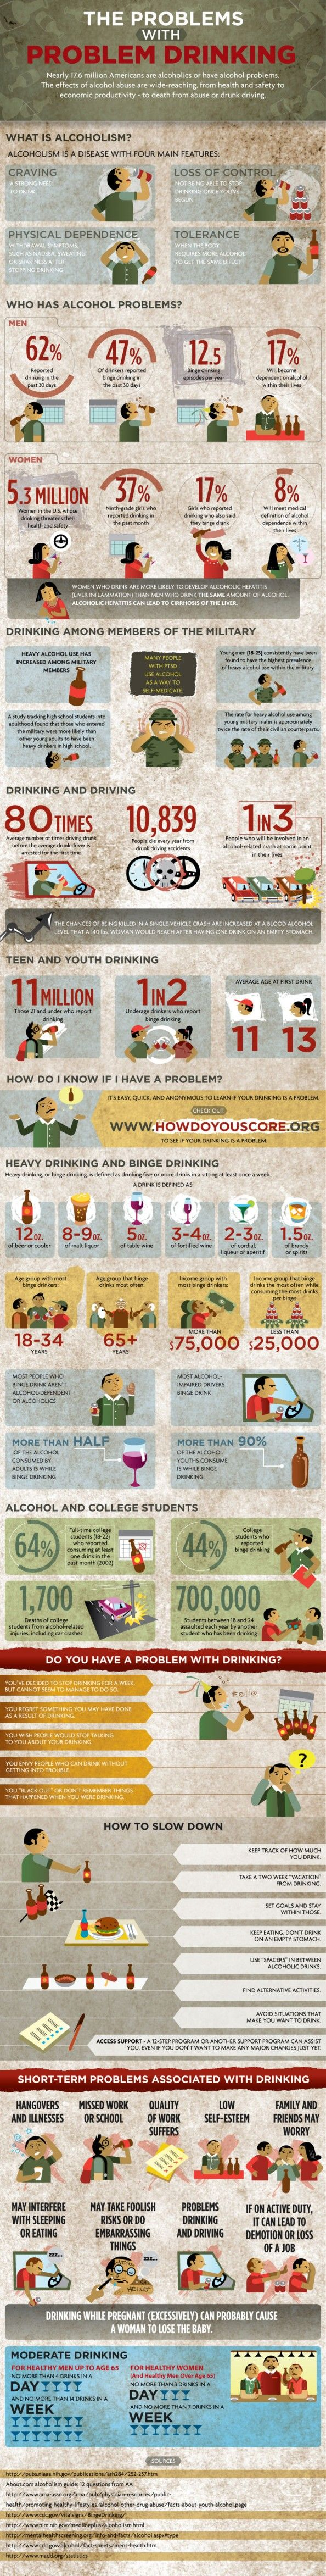 Am I an Alcoholic? – Alcohol Abuse Facts   Screening for Mental Health Infographic